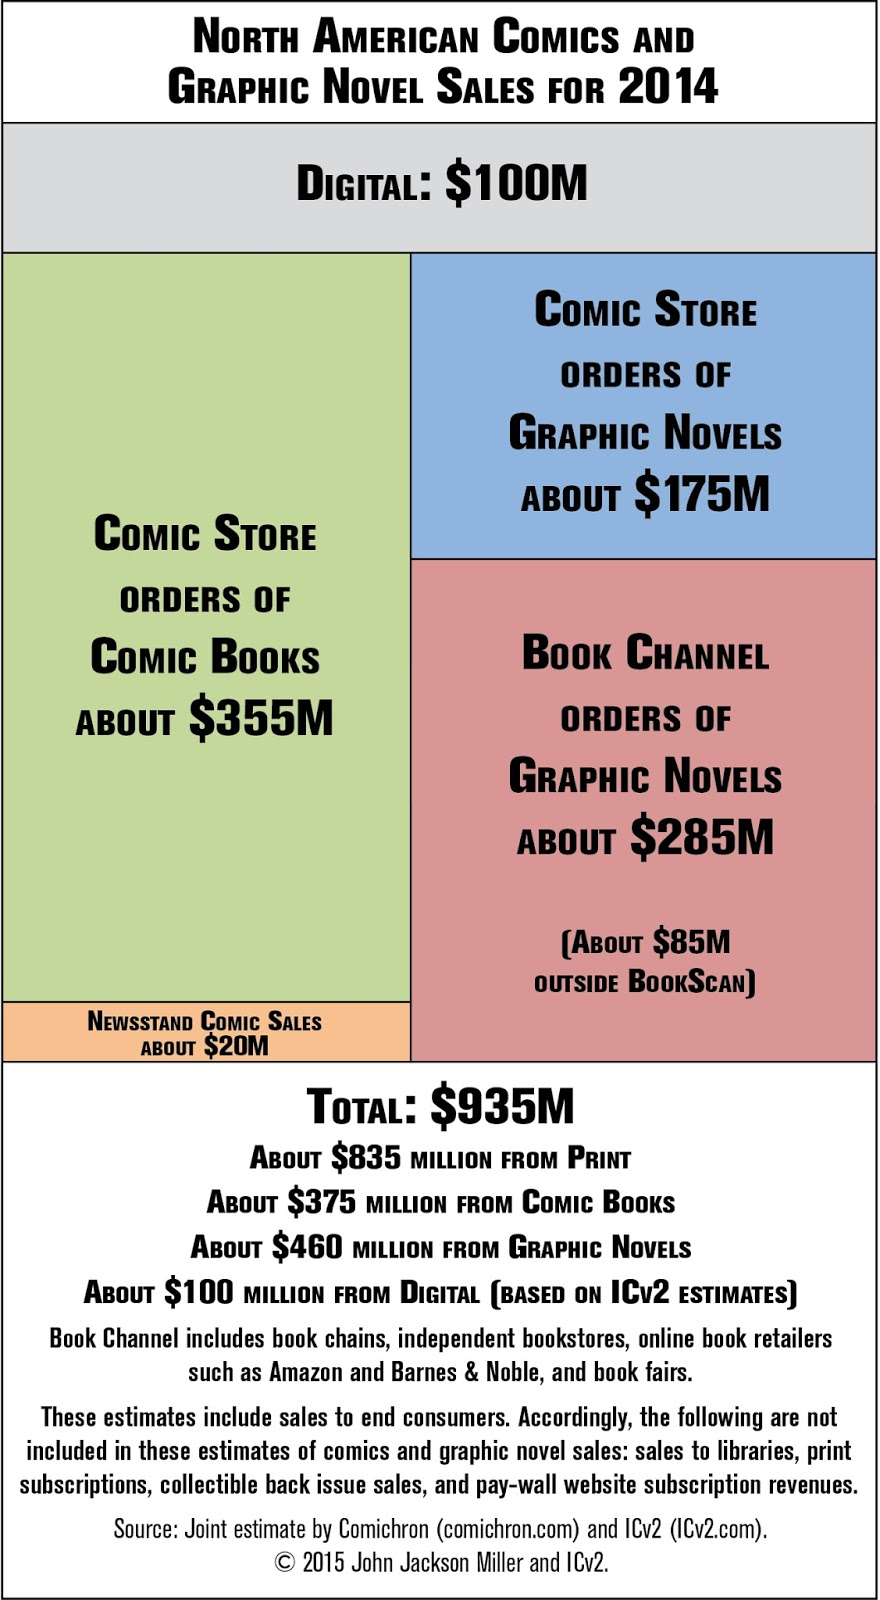 From http://blog.comichron.com/2015/06/comics-and-graphic-novel-sales-hit-new.html